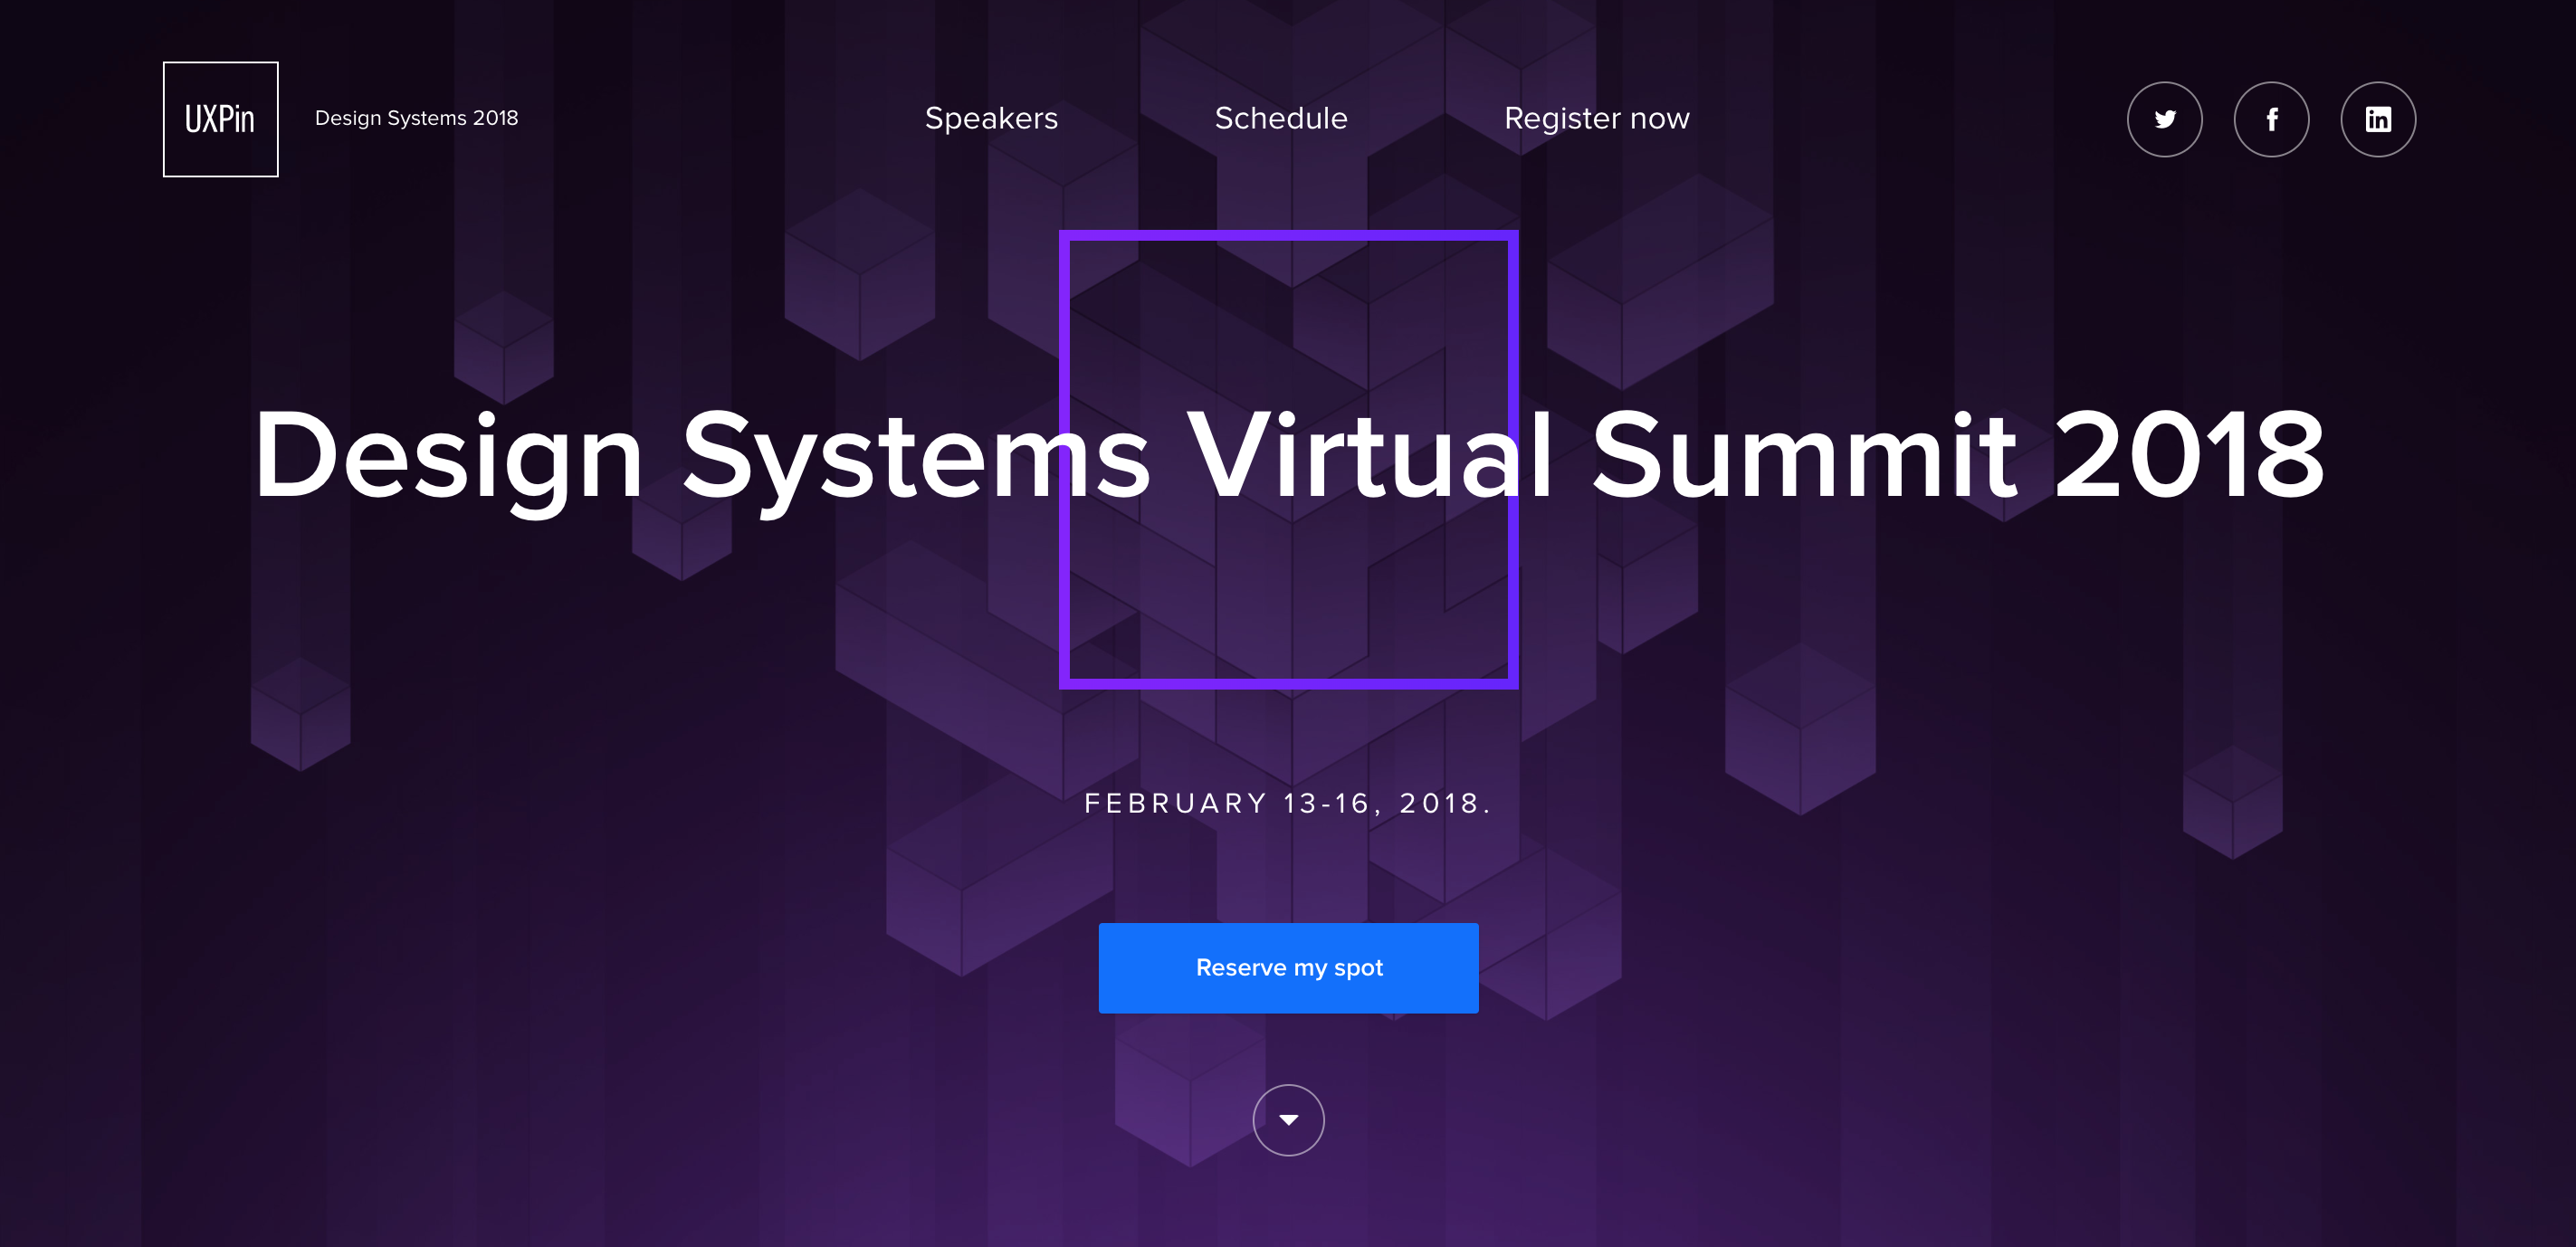 Design Systems Virtual Summit 2018